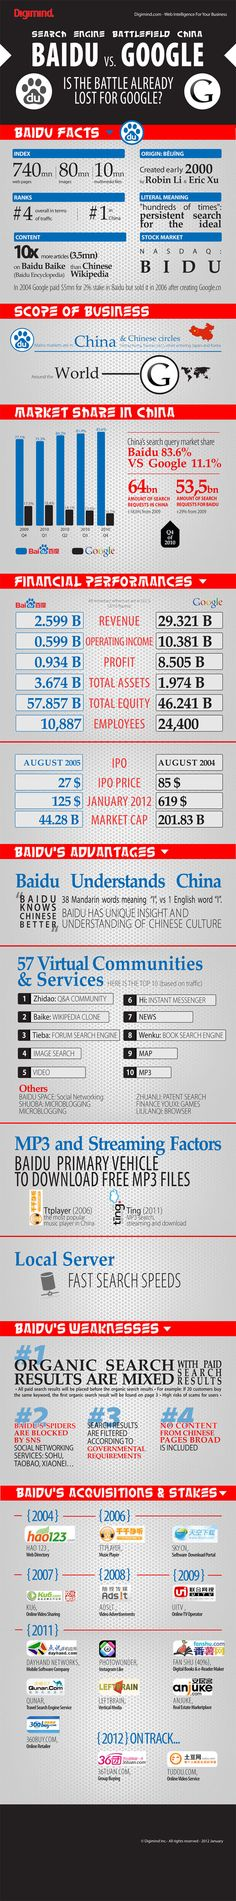 Baidu is streets ahead of Google in search, controlling 83.6 percent of all searches in China against Google's 11.1 percent. However, when you look at search in terms of revenue, the picture isn't so shabby. Google accounts for 18 percent of the estimated 866 million (5.5 billion yuan) industry-wide annual revenue. That means that the US firm is making more than 155 million dollar from search alone in China.